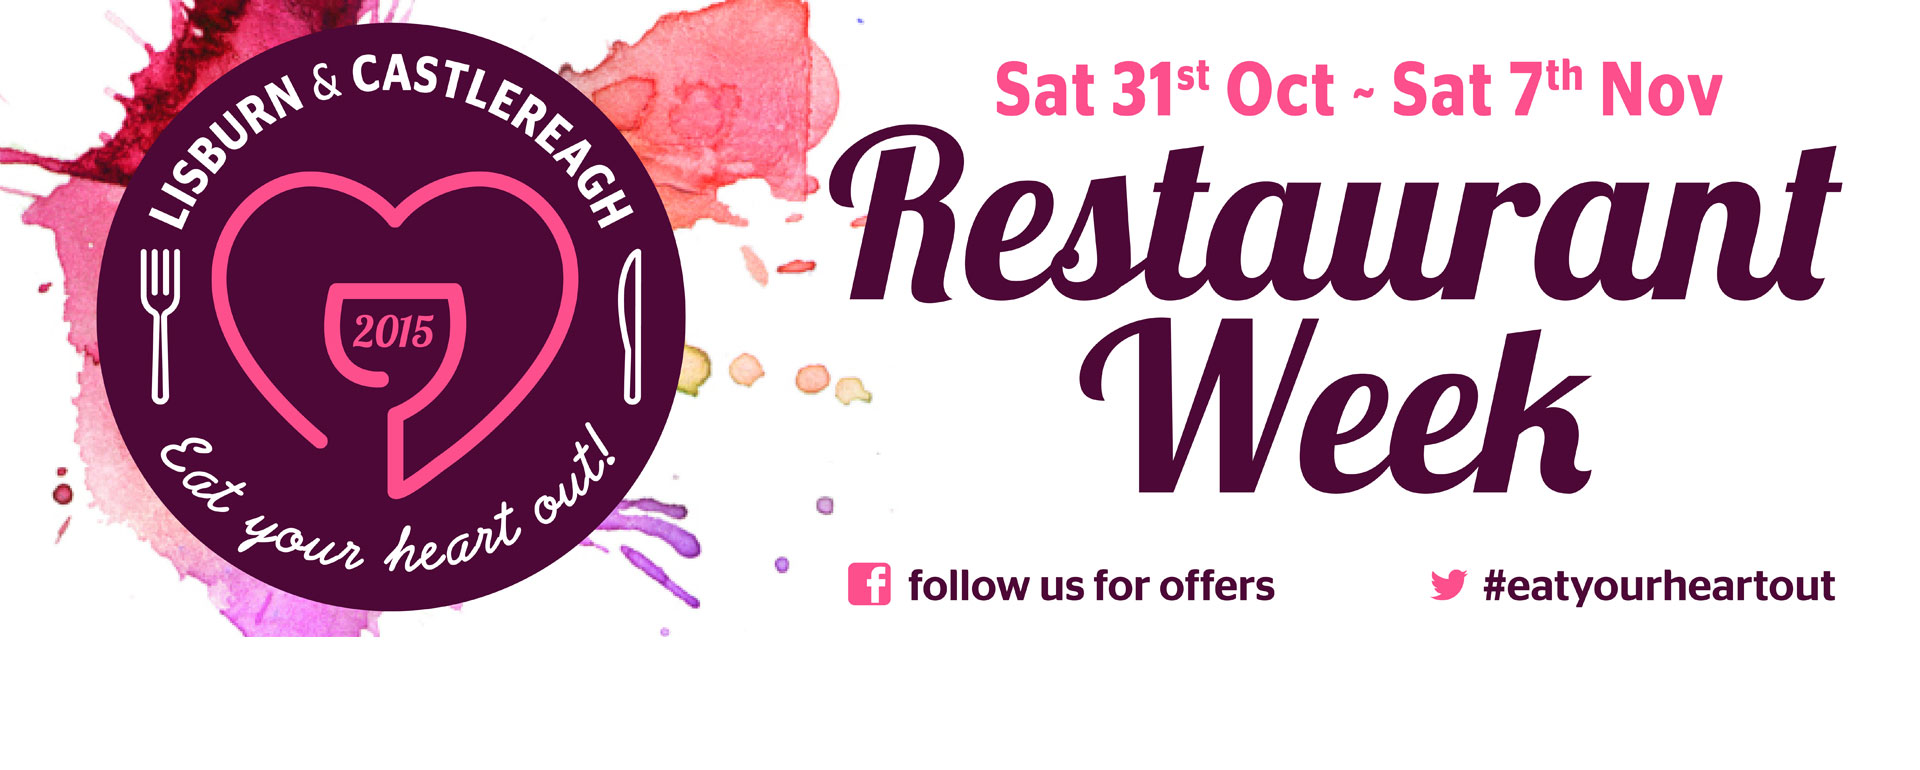 Lisburn & Castlereagh Restaurant Week